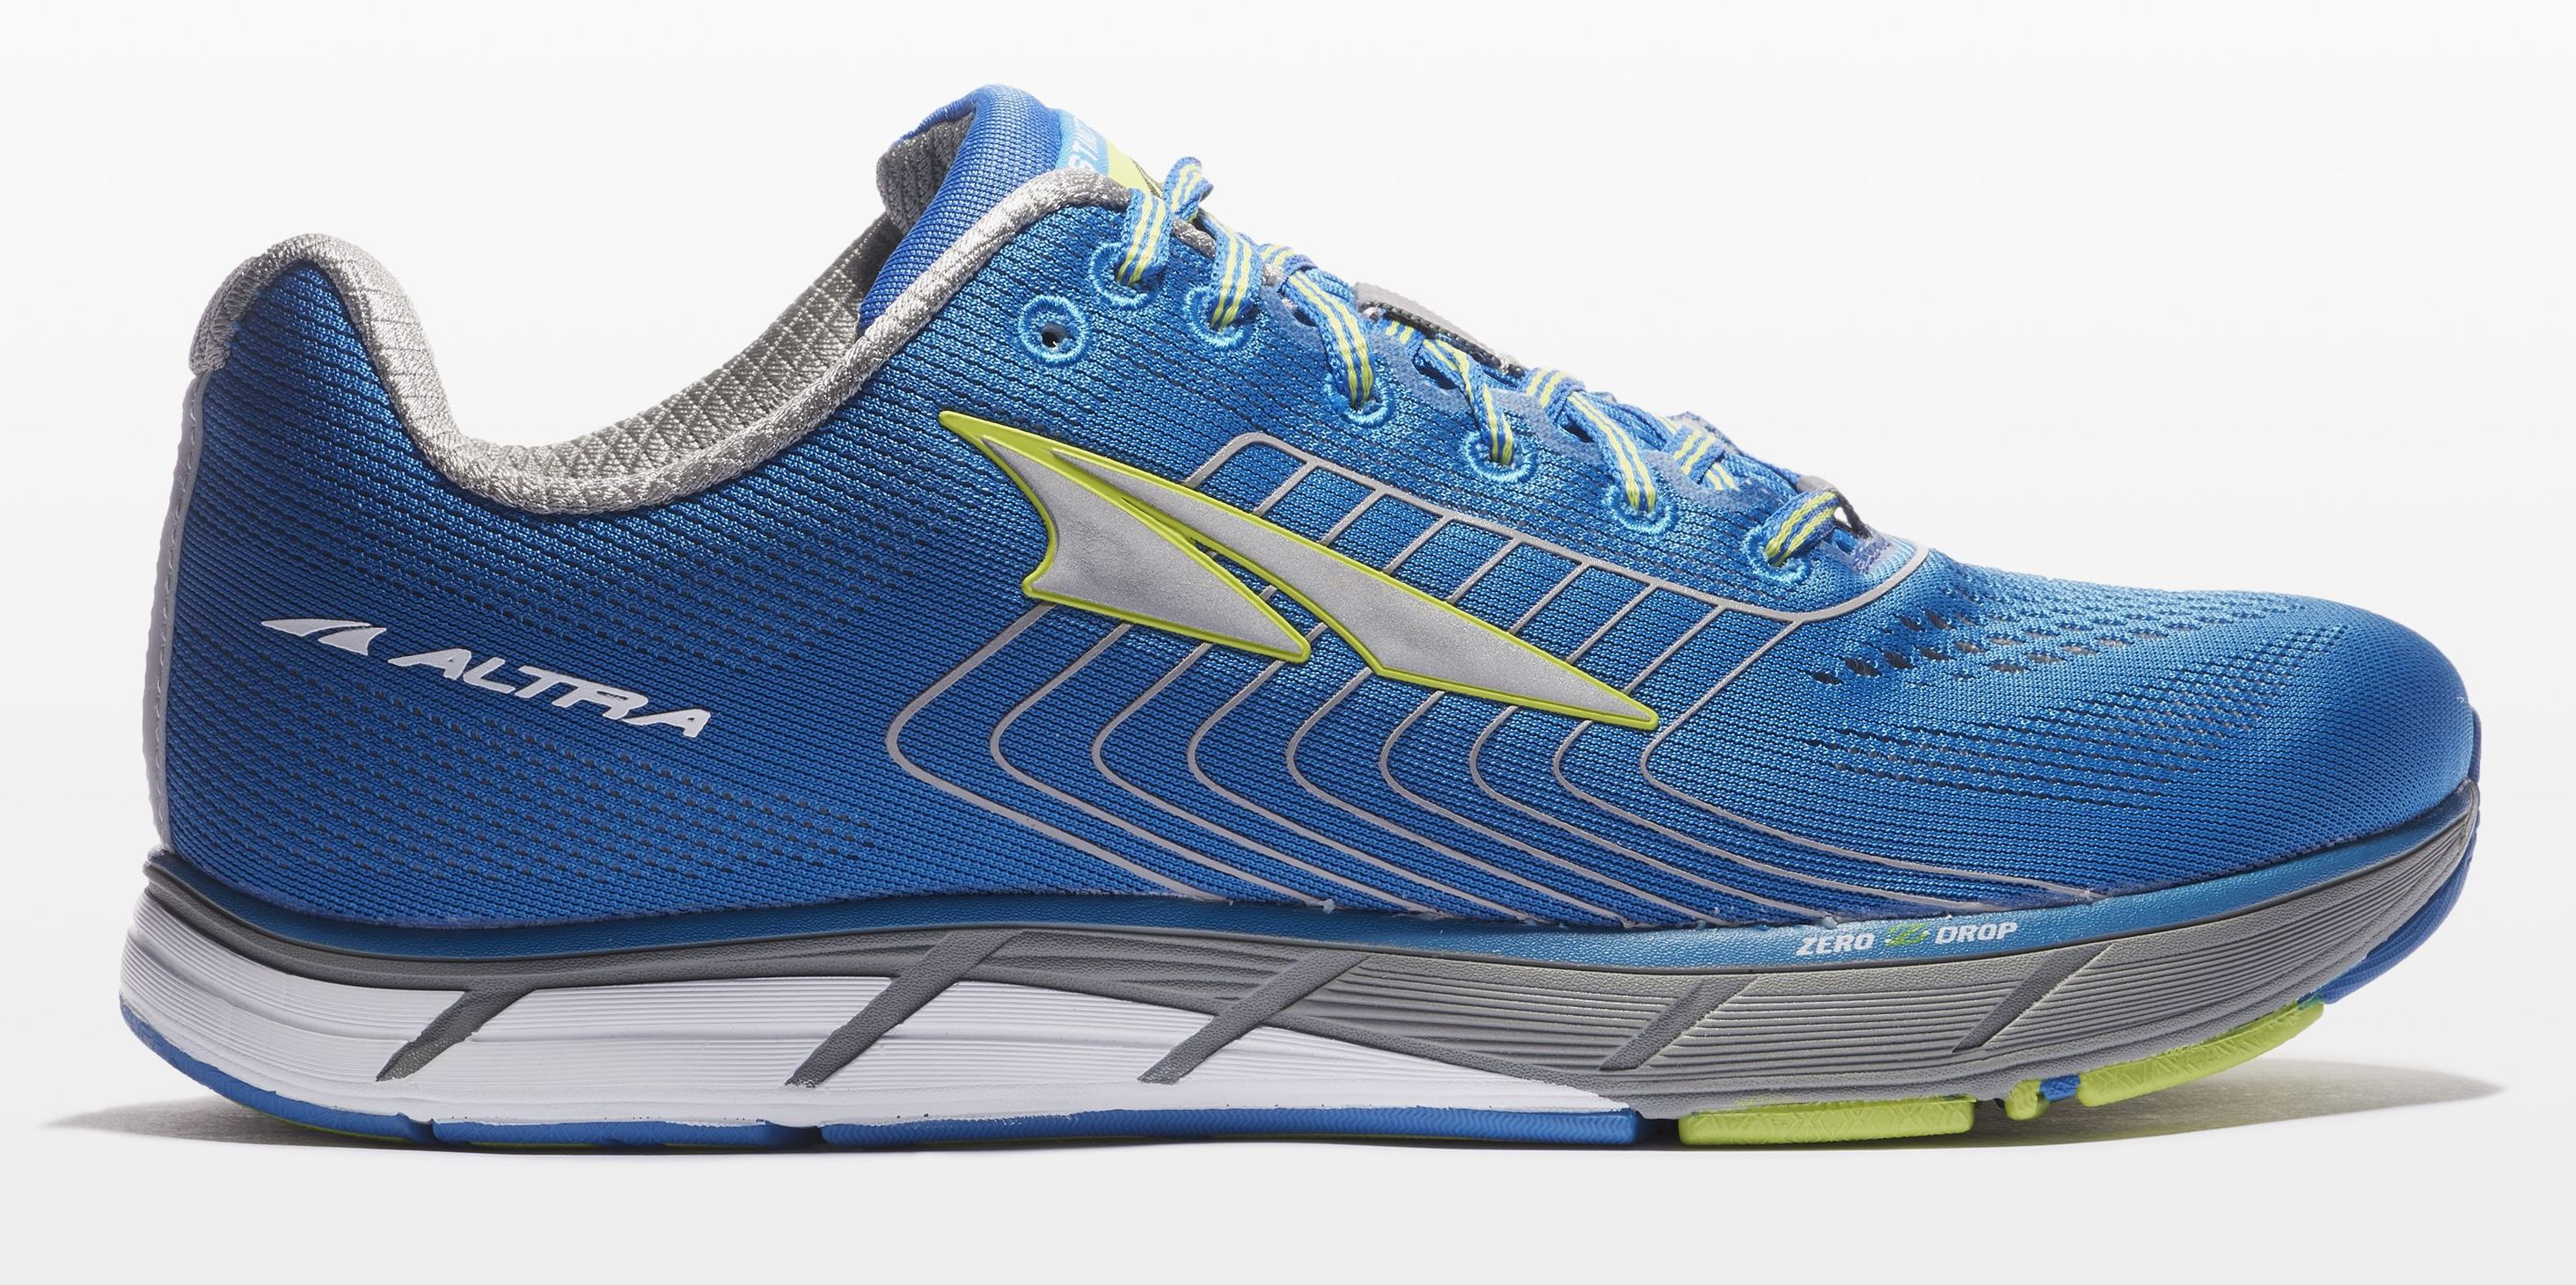 info for bb51c f6ee8 Altra Running Shoes 2019 | Altra Shoe Reviews